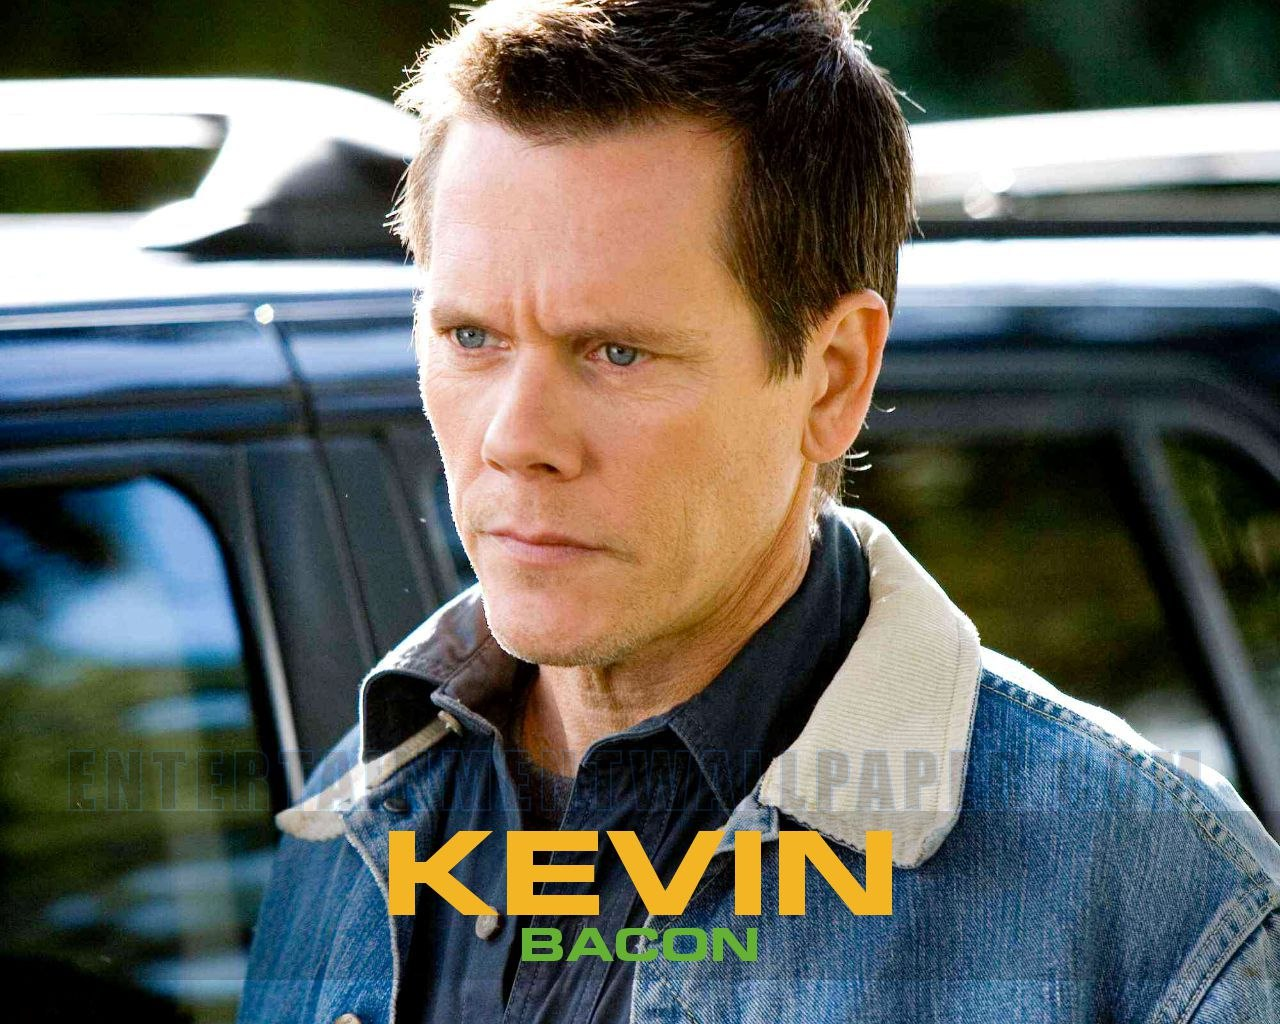 1280x1024 - Kevin Bacon Wallpapers 4